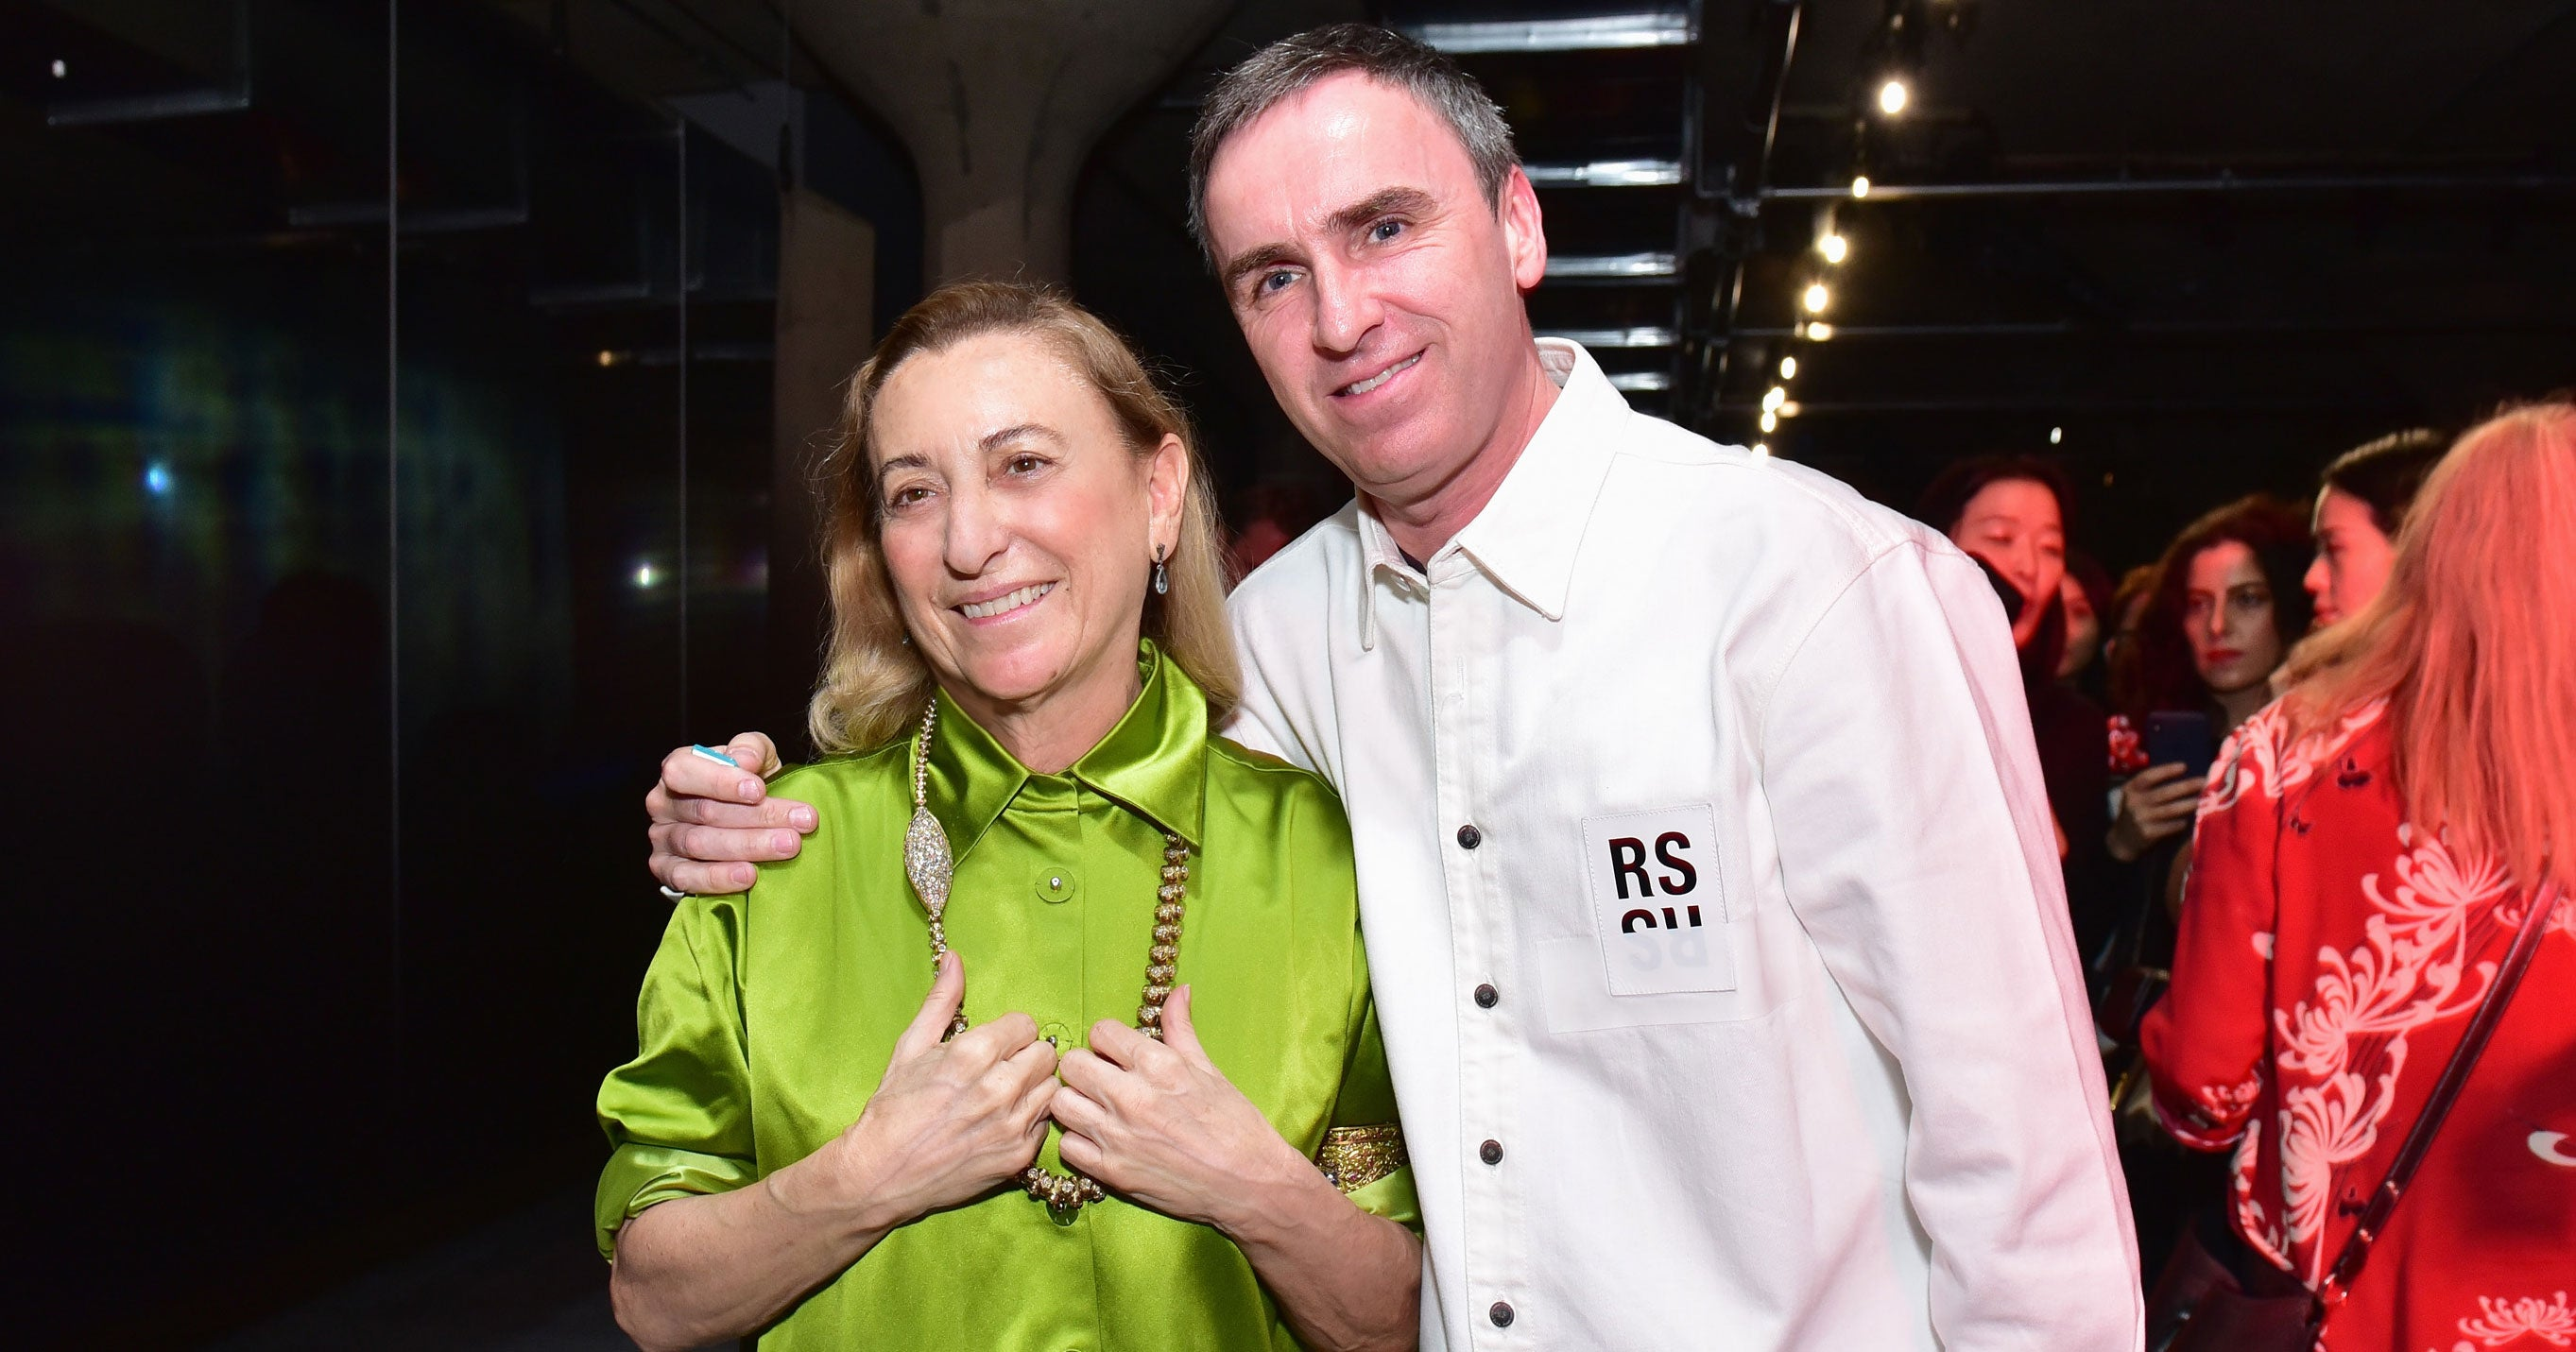 Raf Simons Miuccia Prada Are Teaming Up In First-Ever Co-Creative Director Roles